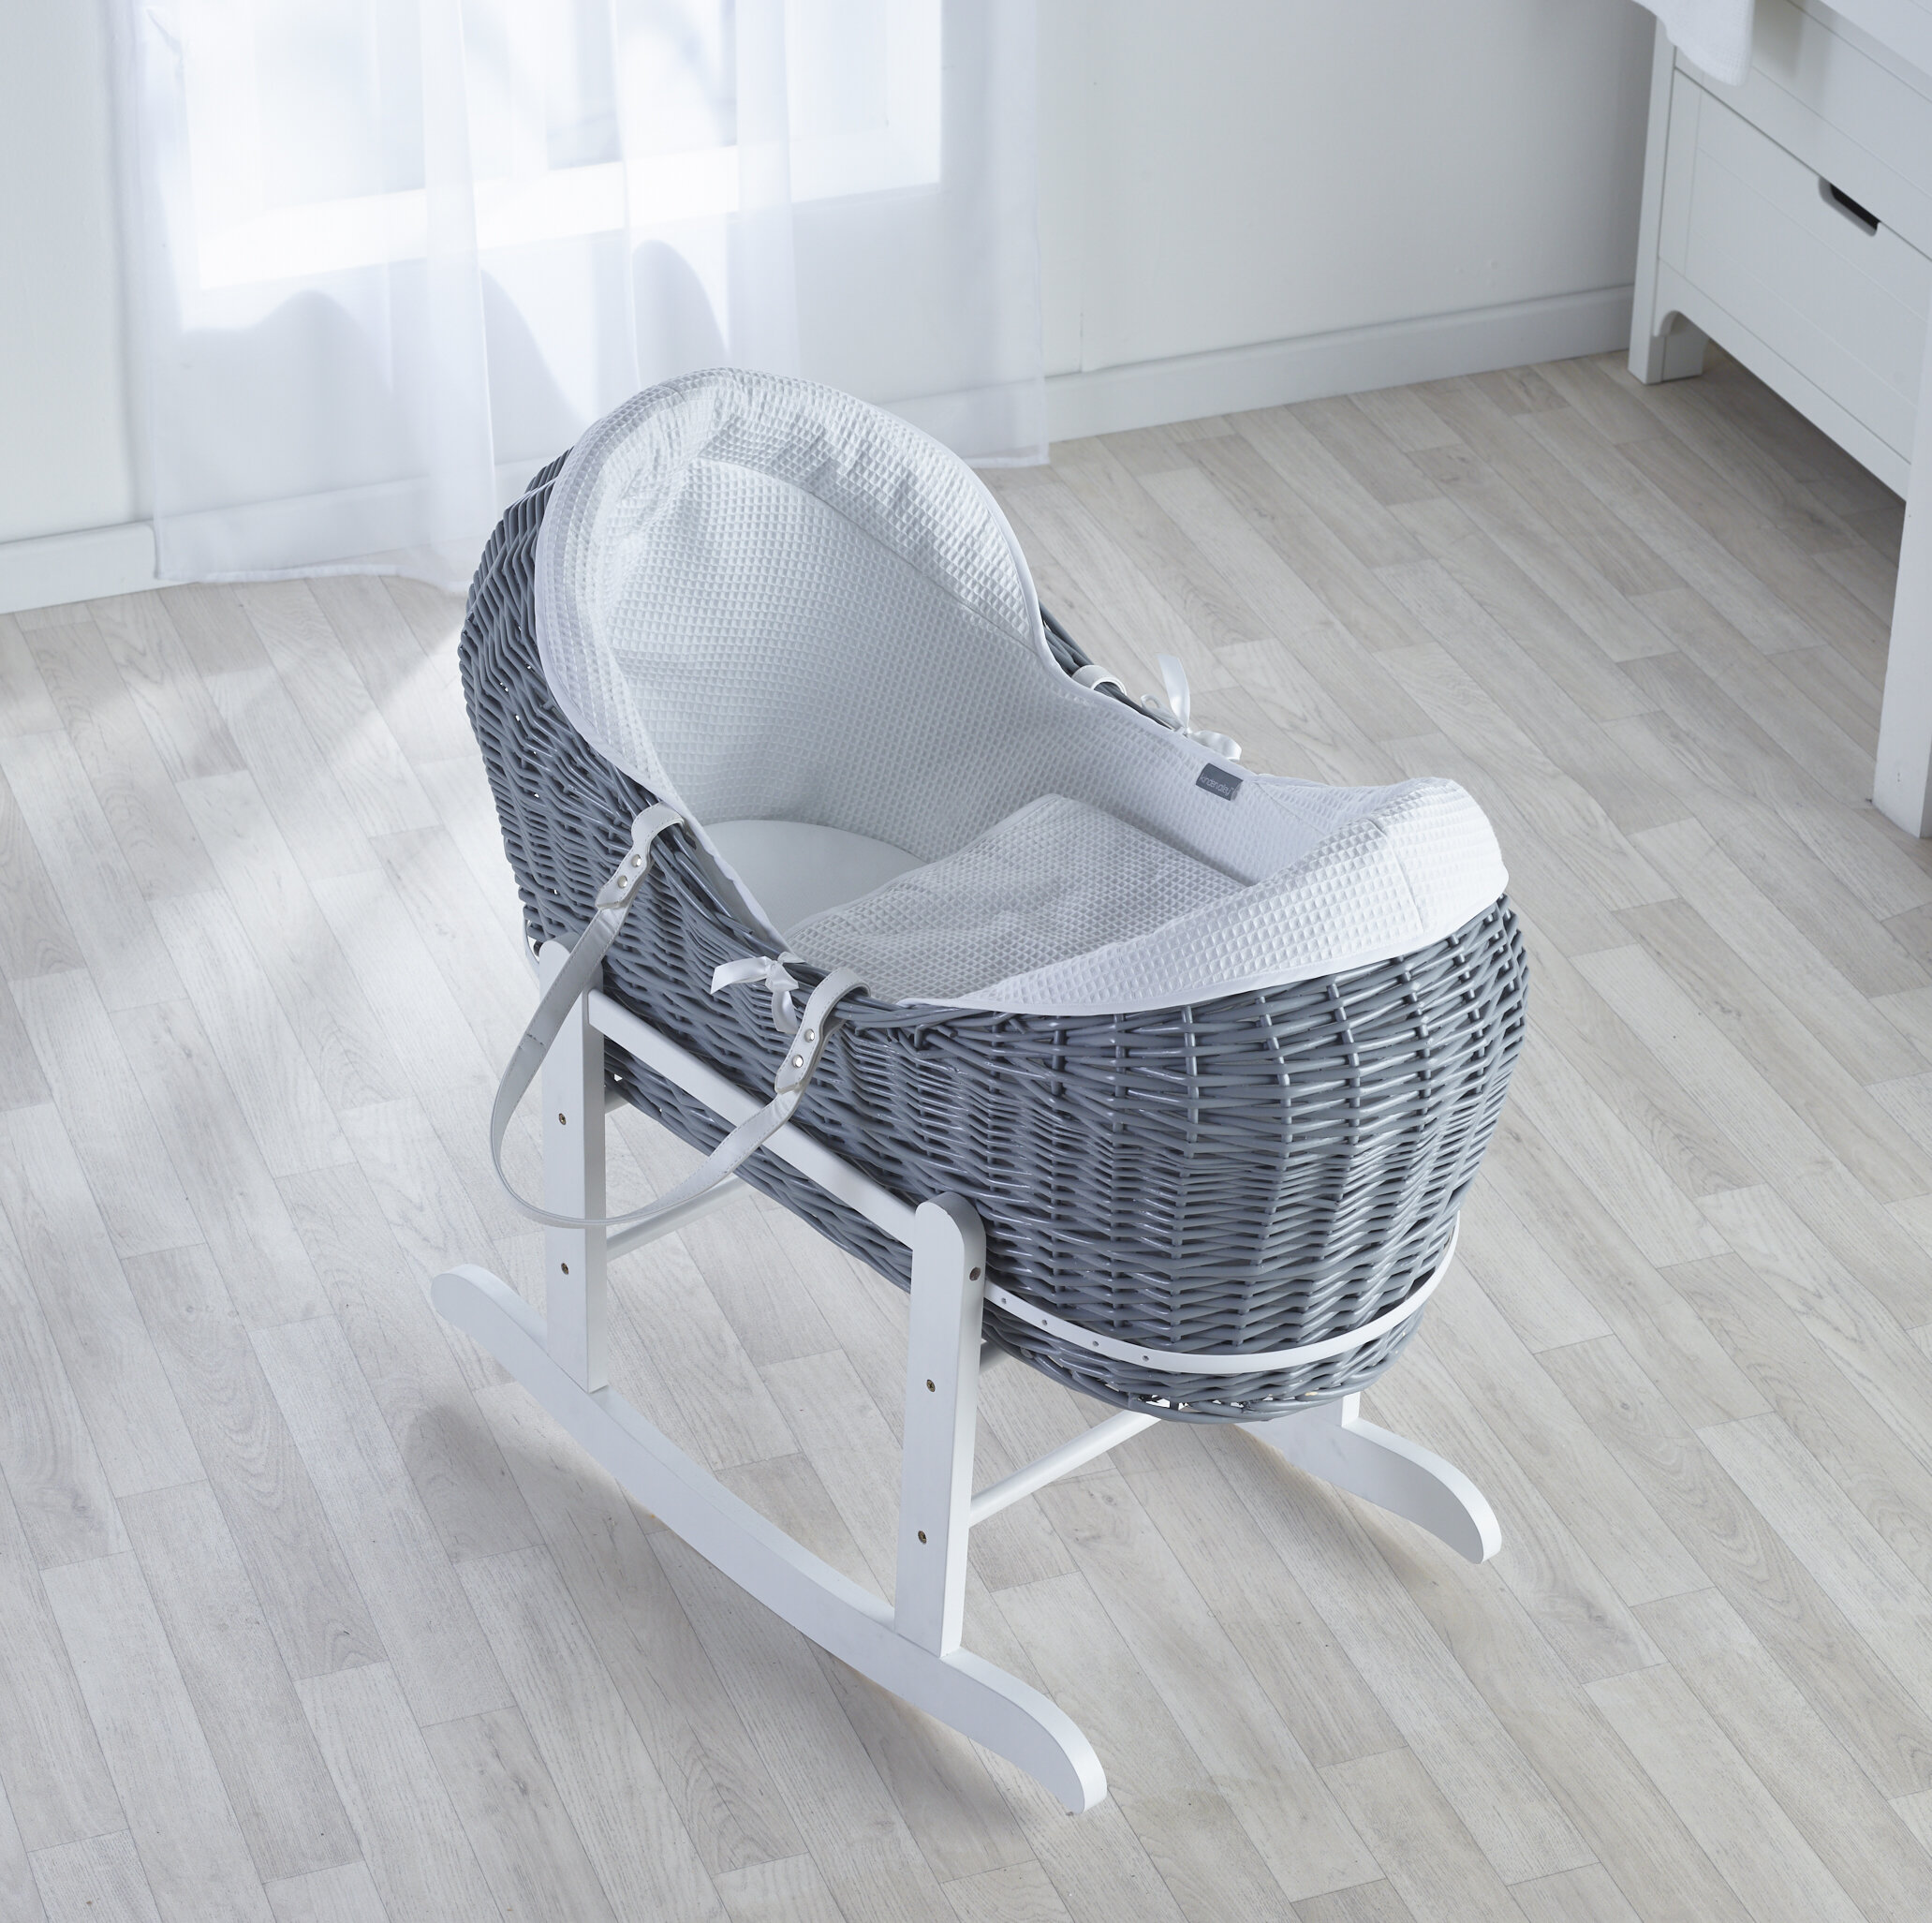 Extra Padding for Moses Basket fit all Baskets Universal For Wicker /& Palm